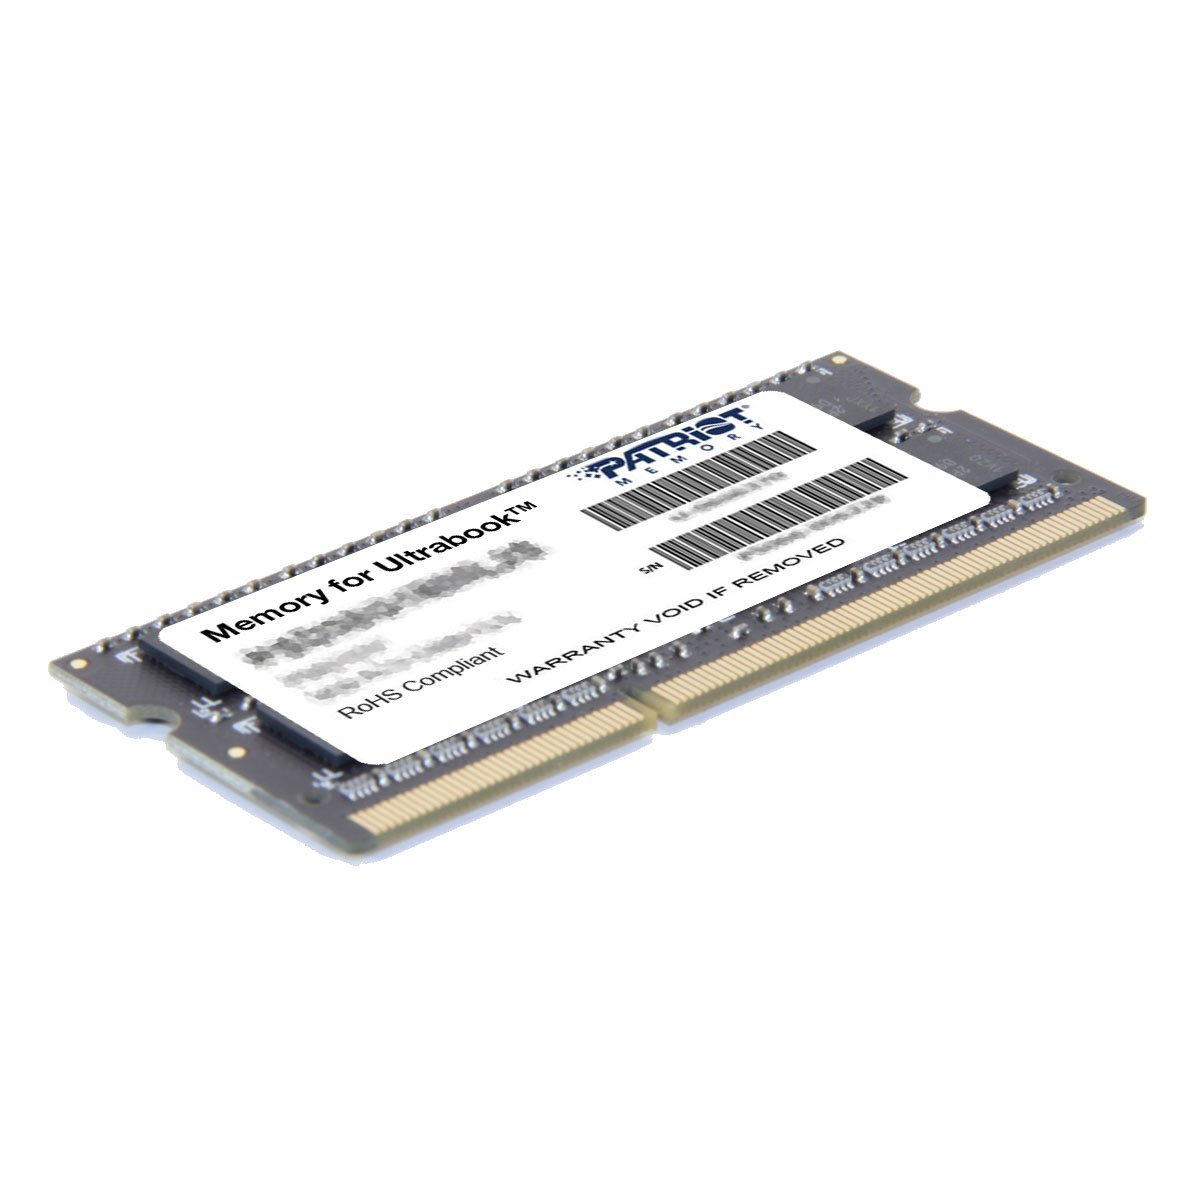 Memoria Ram 8gb Patriot 1.35v Ddr3 1600mhz Pc3-12800 Cl11 Sodimm Psd38g1600l2s